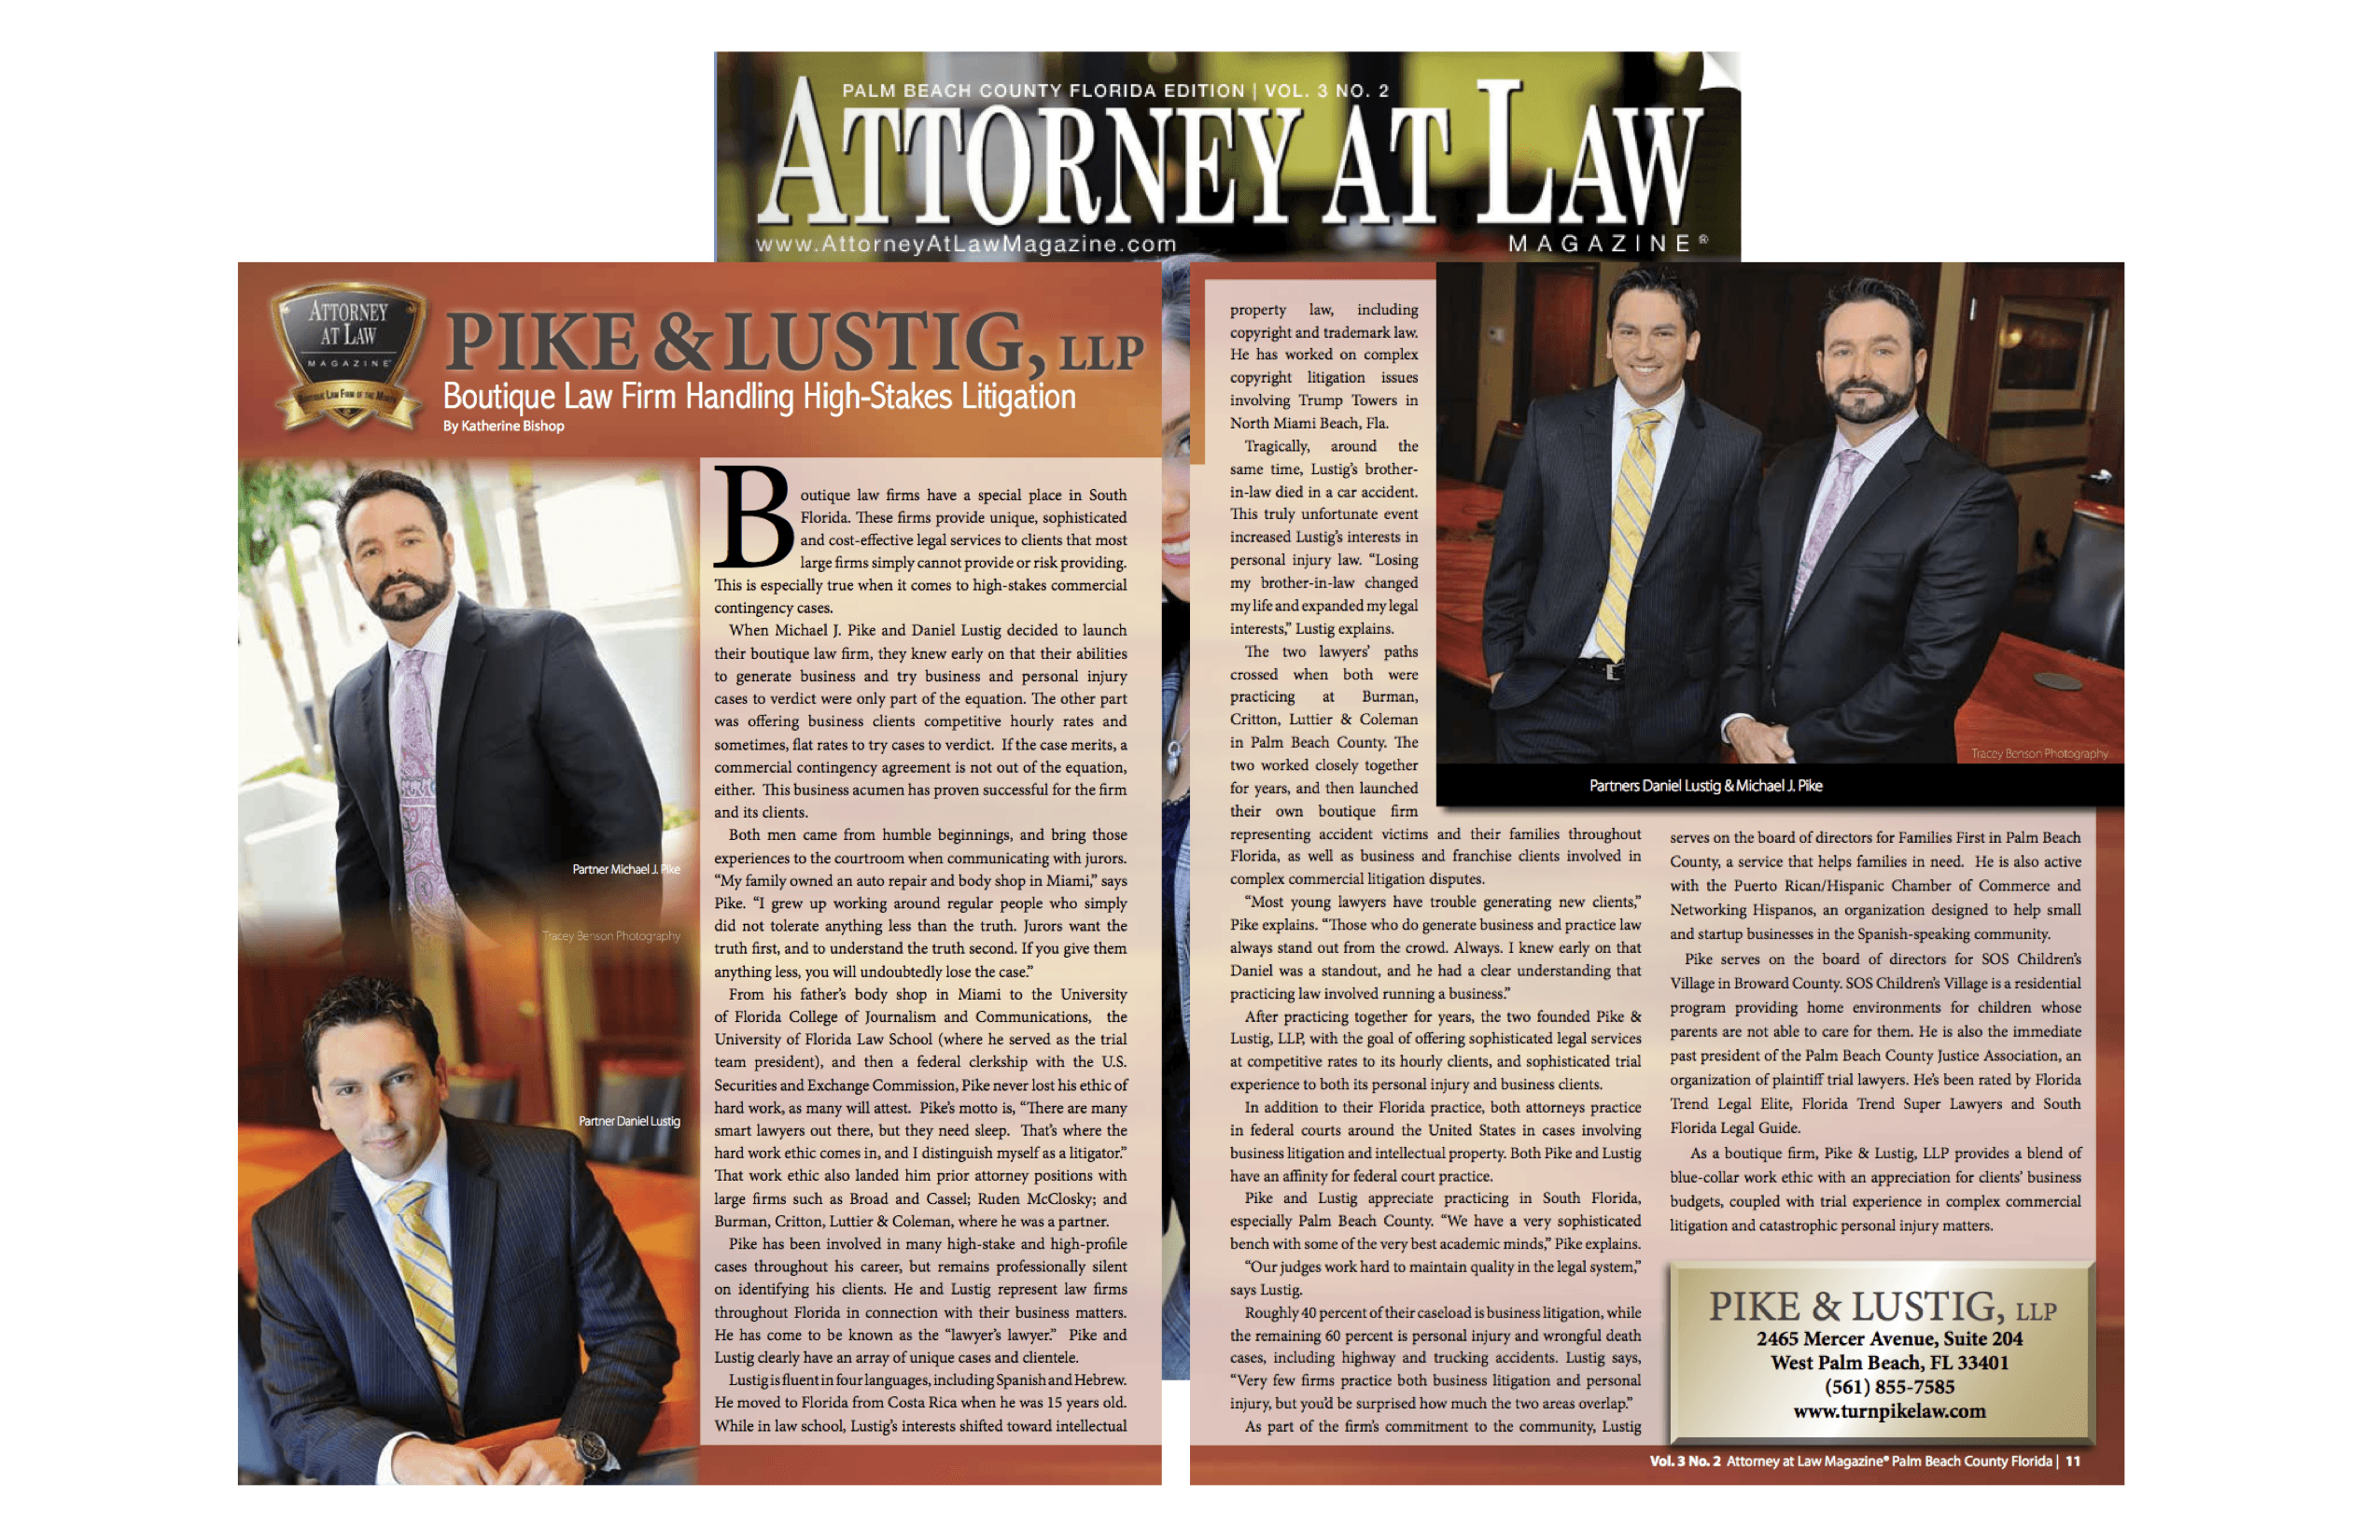 Attorney at Law Magazine- Pike & Lustig - Pike & Lustig profile- Vol3 No2